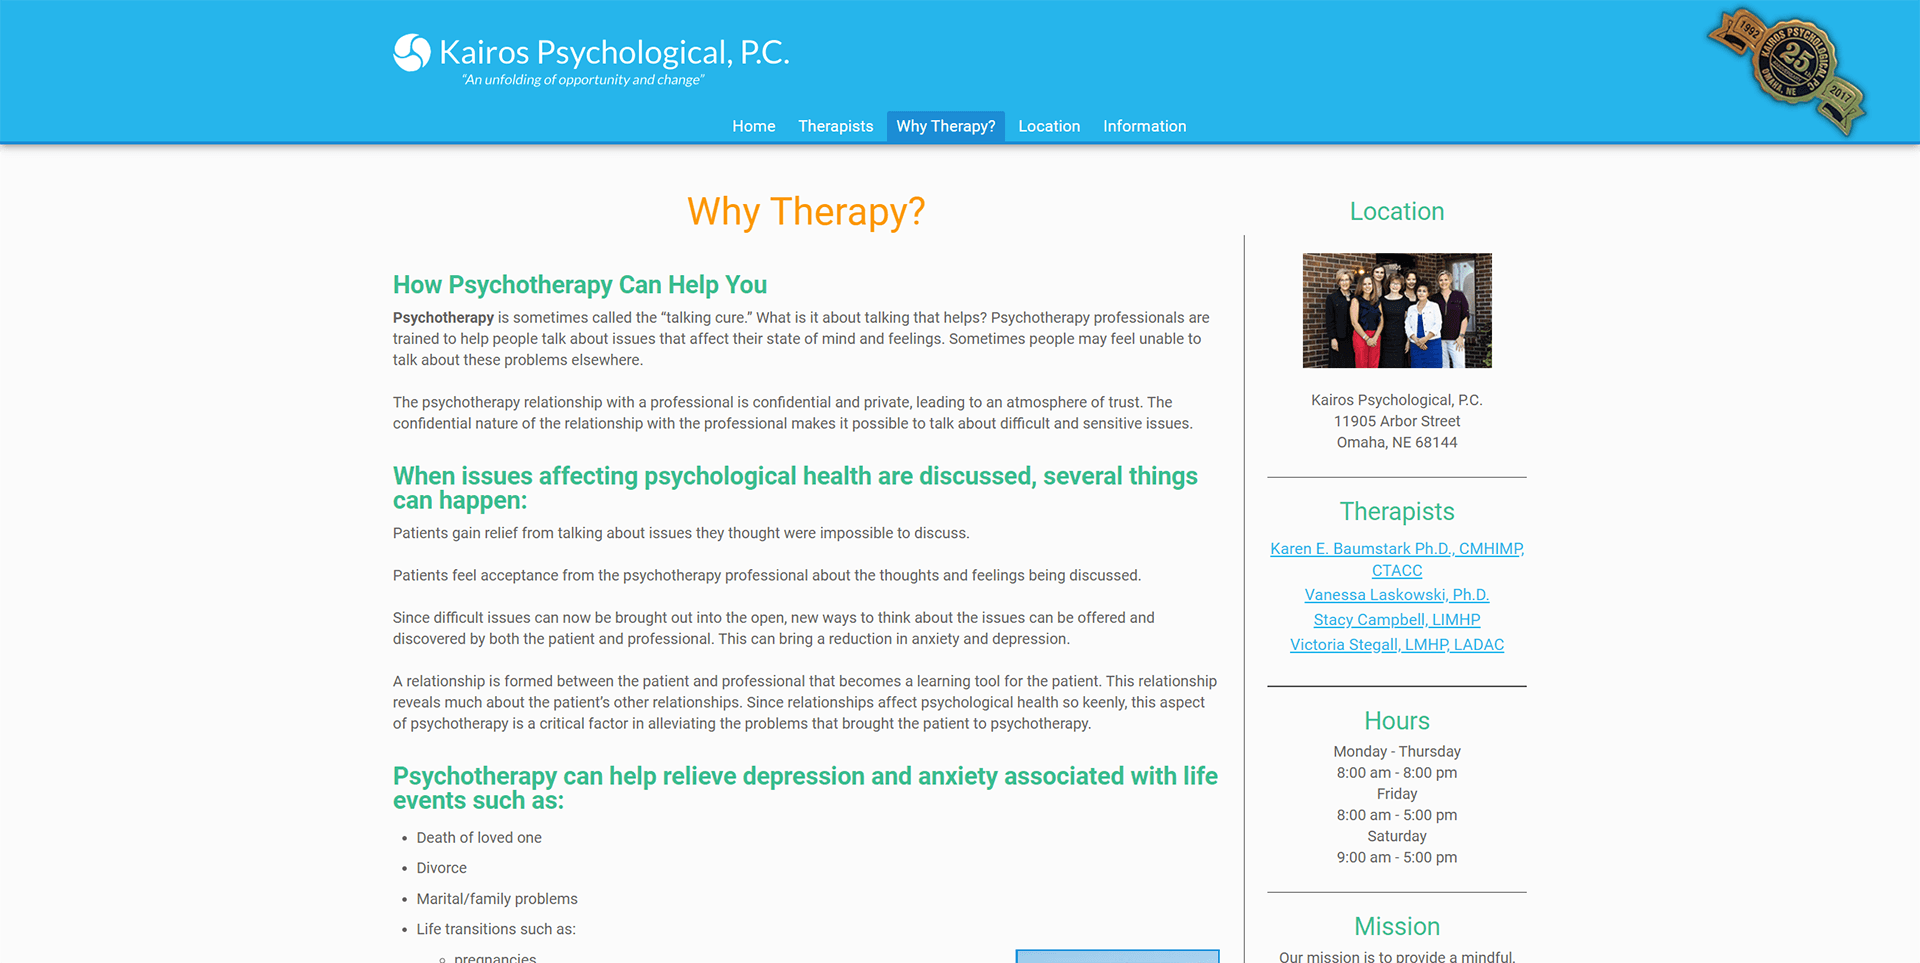 Kairos Psychological Why Therapy Page